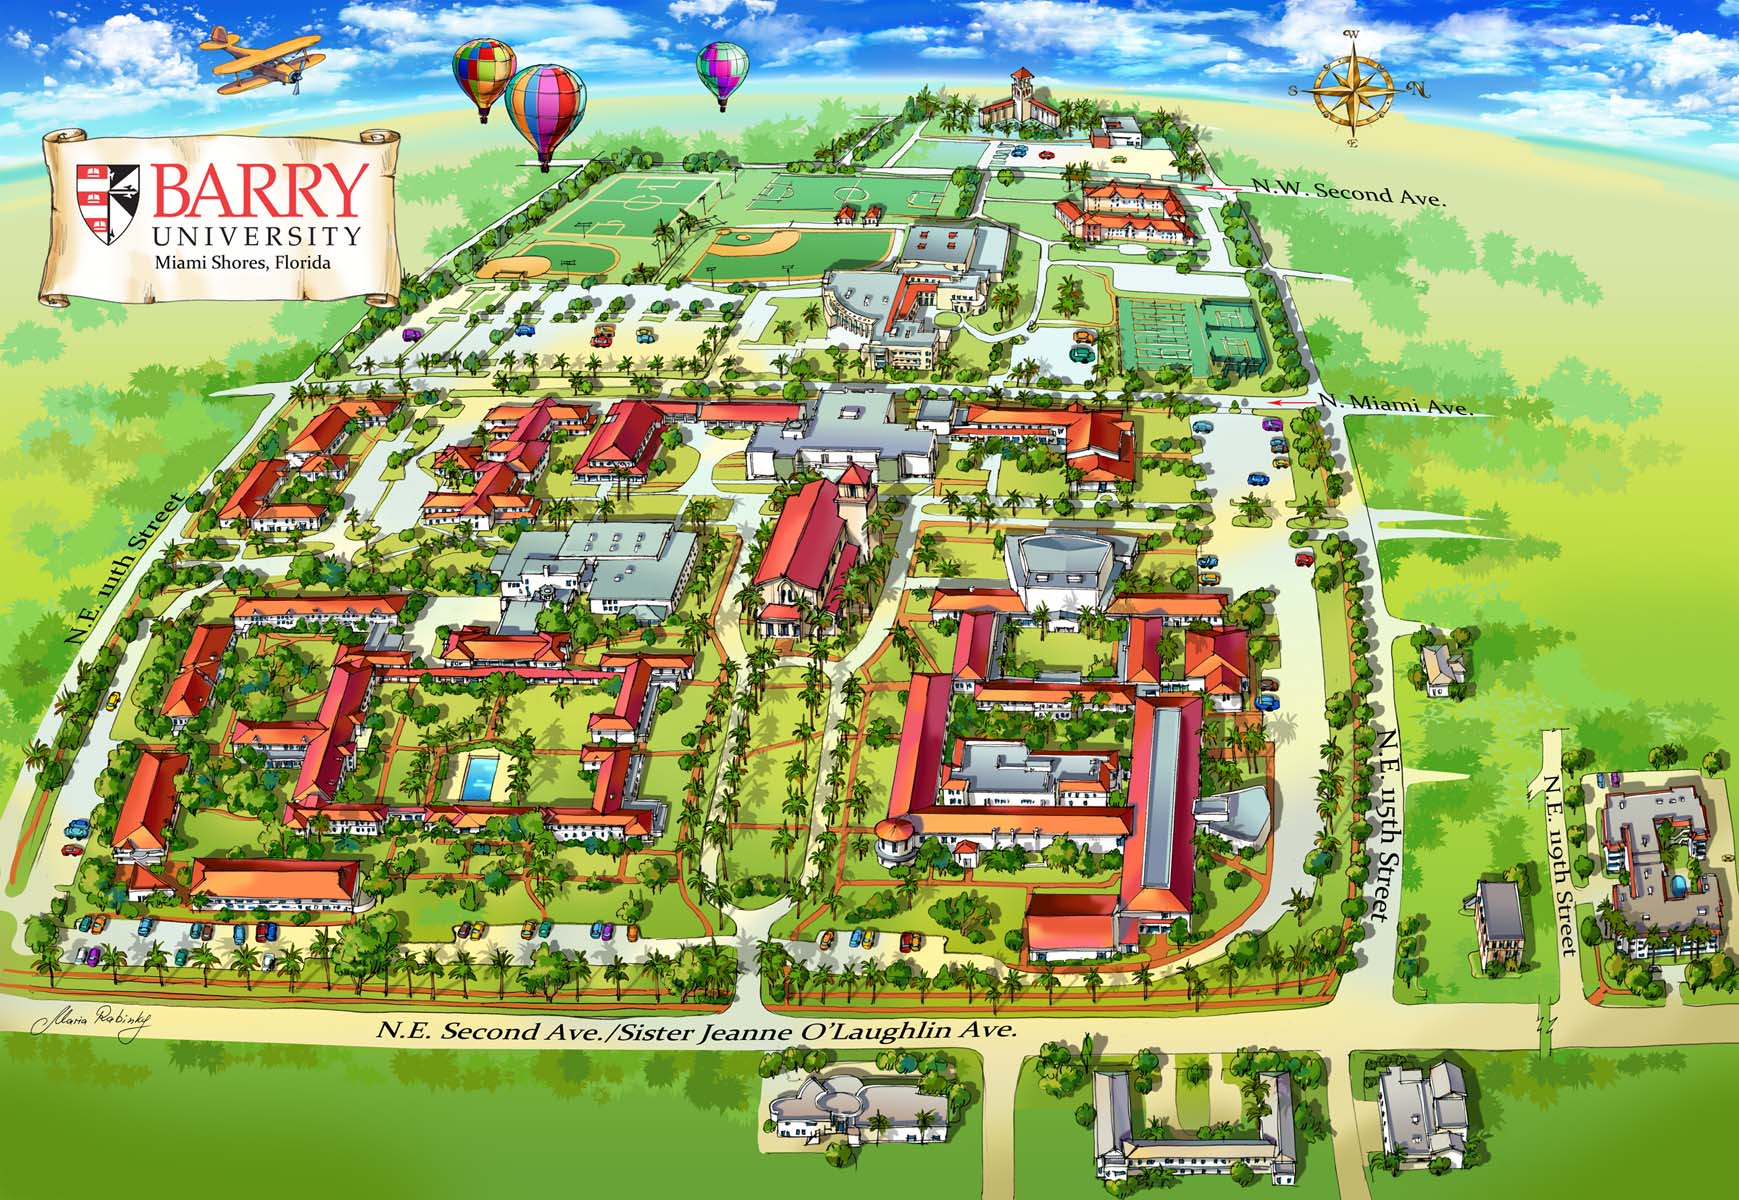 Barry University Campus Map Illustration by Maria Rabinky